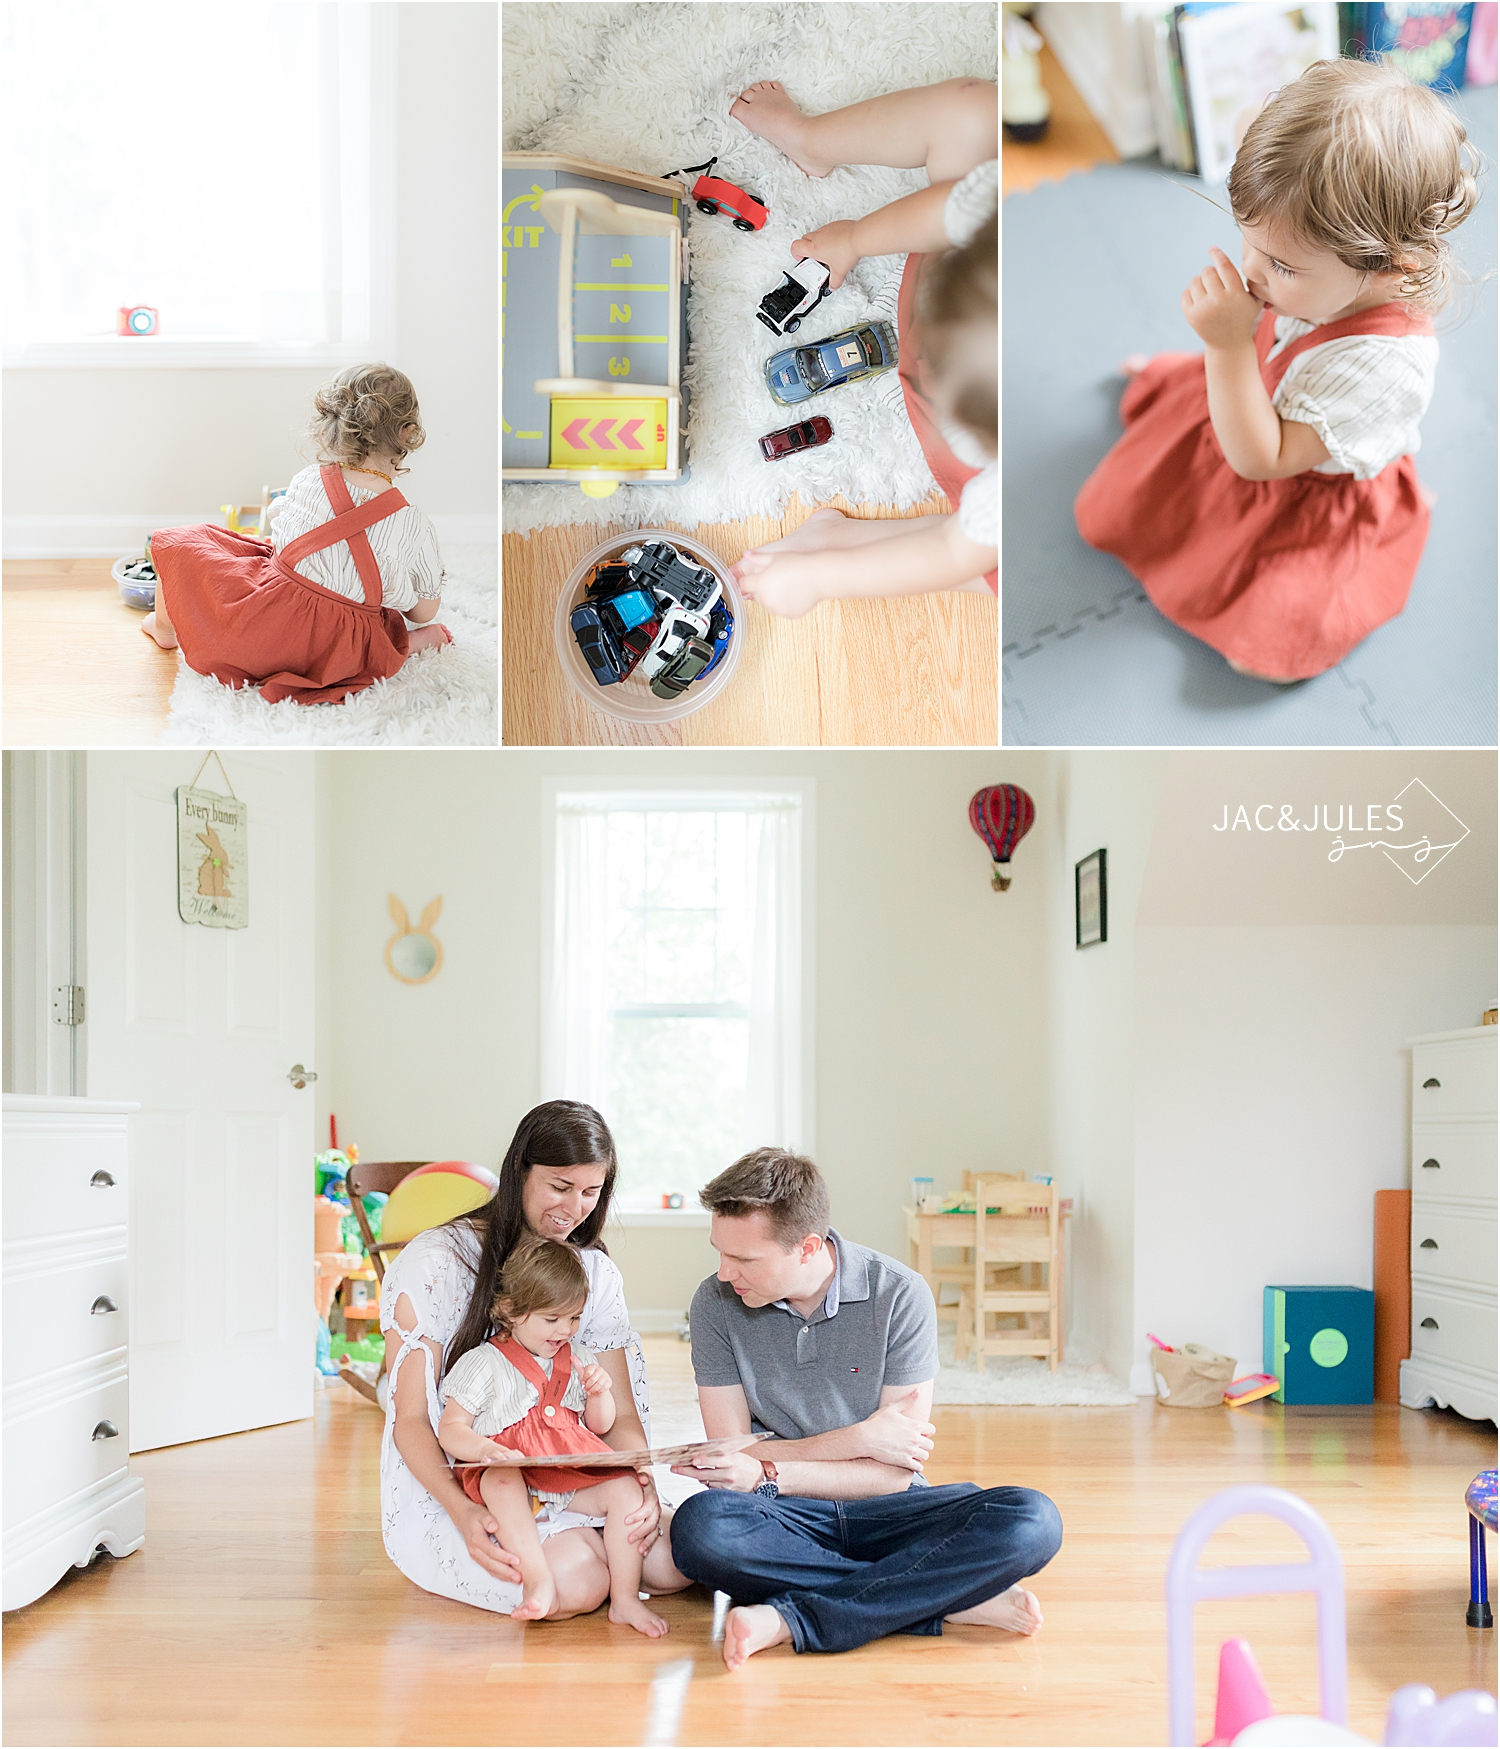 little girl and her family play at home